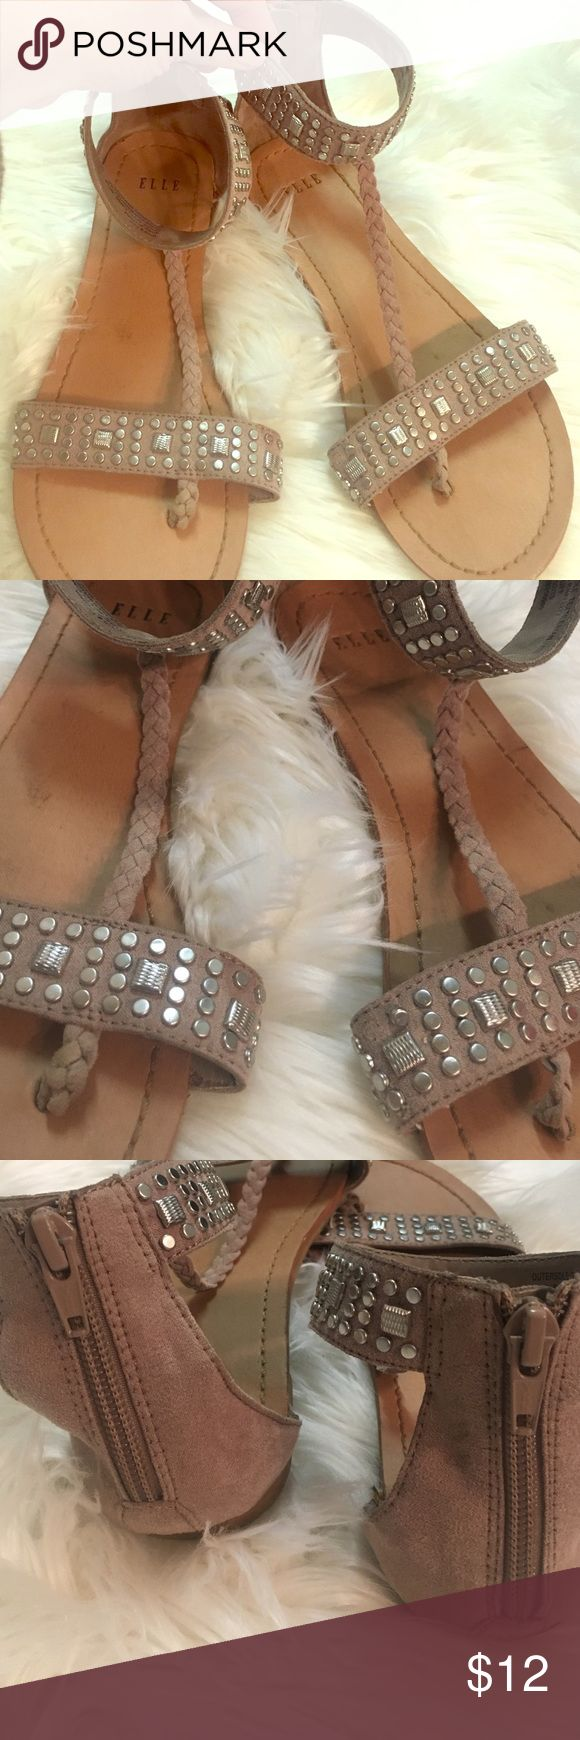 ELLE gladiator braided studs tan sandals size 6.5 Super cute tan gladiator sandals! Perfect accents with silver metal studs across toes and around ankles along with a braid that goes up your foot! One circle stud is missing off of left sandal- otherwise in very good condition. From smoke free home ❤ ELLE Shoes Sandals